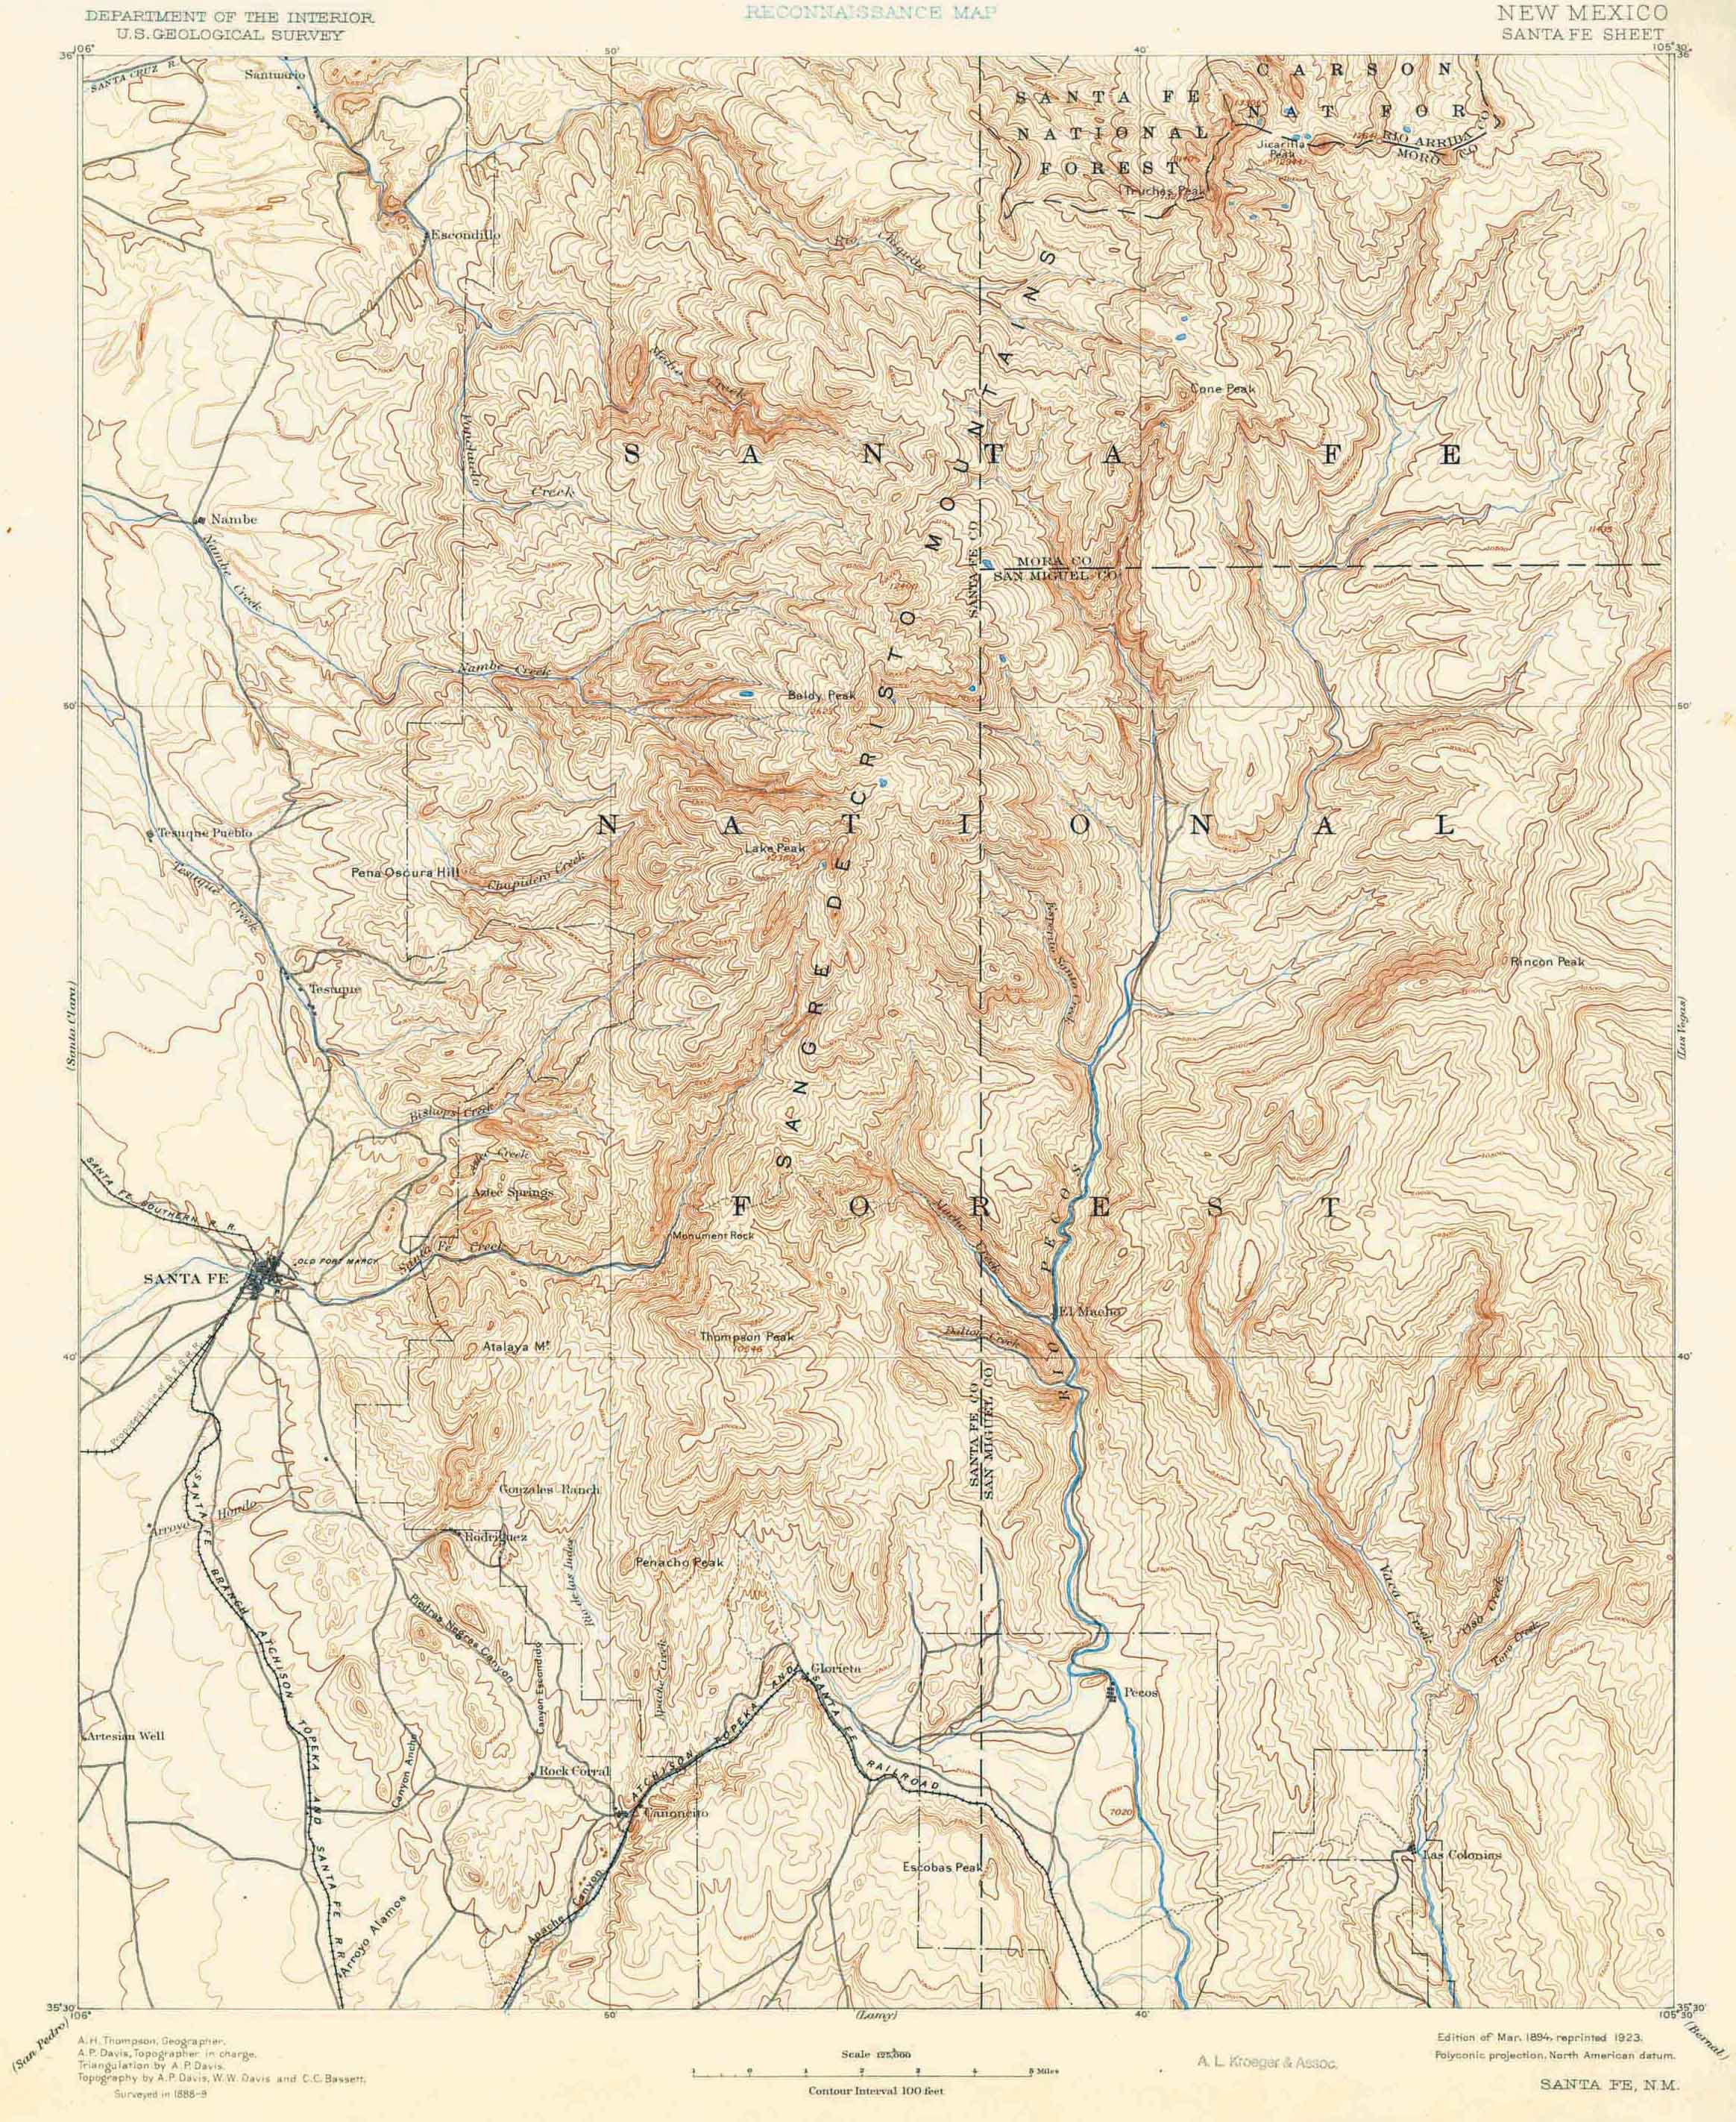 Collection C USGS Topographic Map Of Santa Fe NM At The - Santa fe on us map